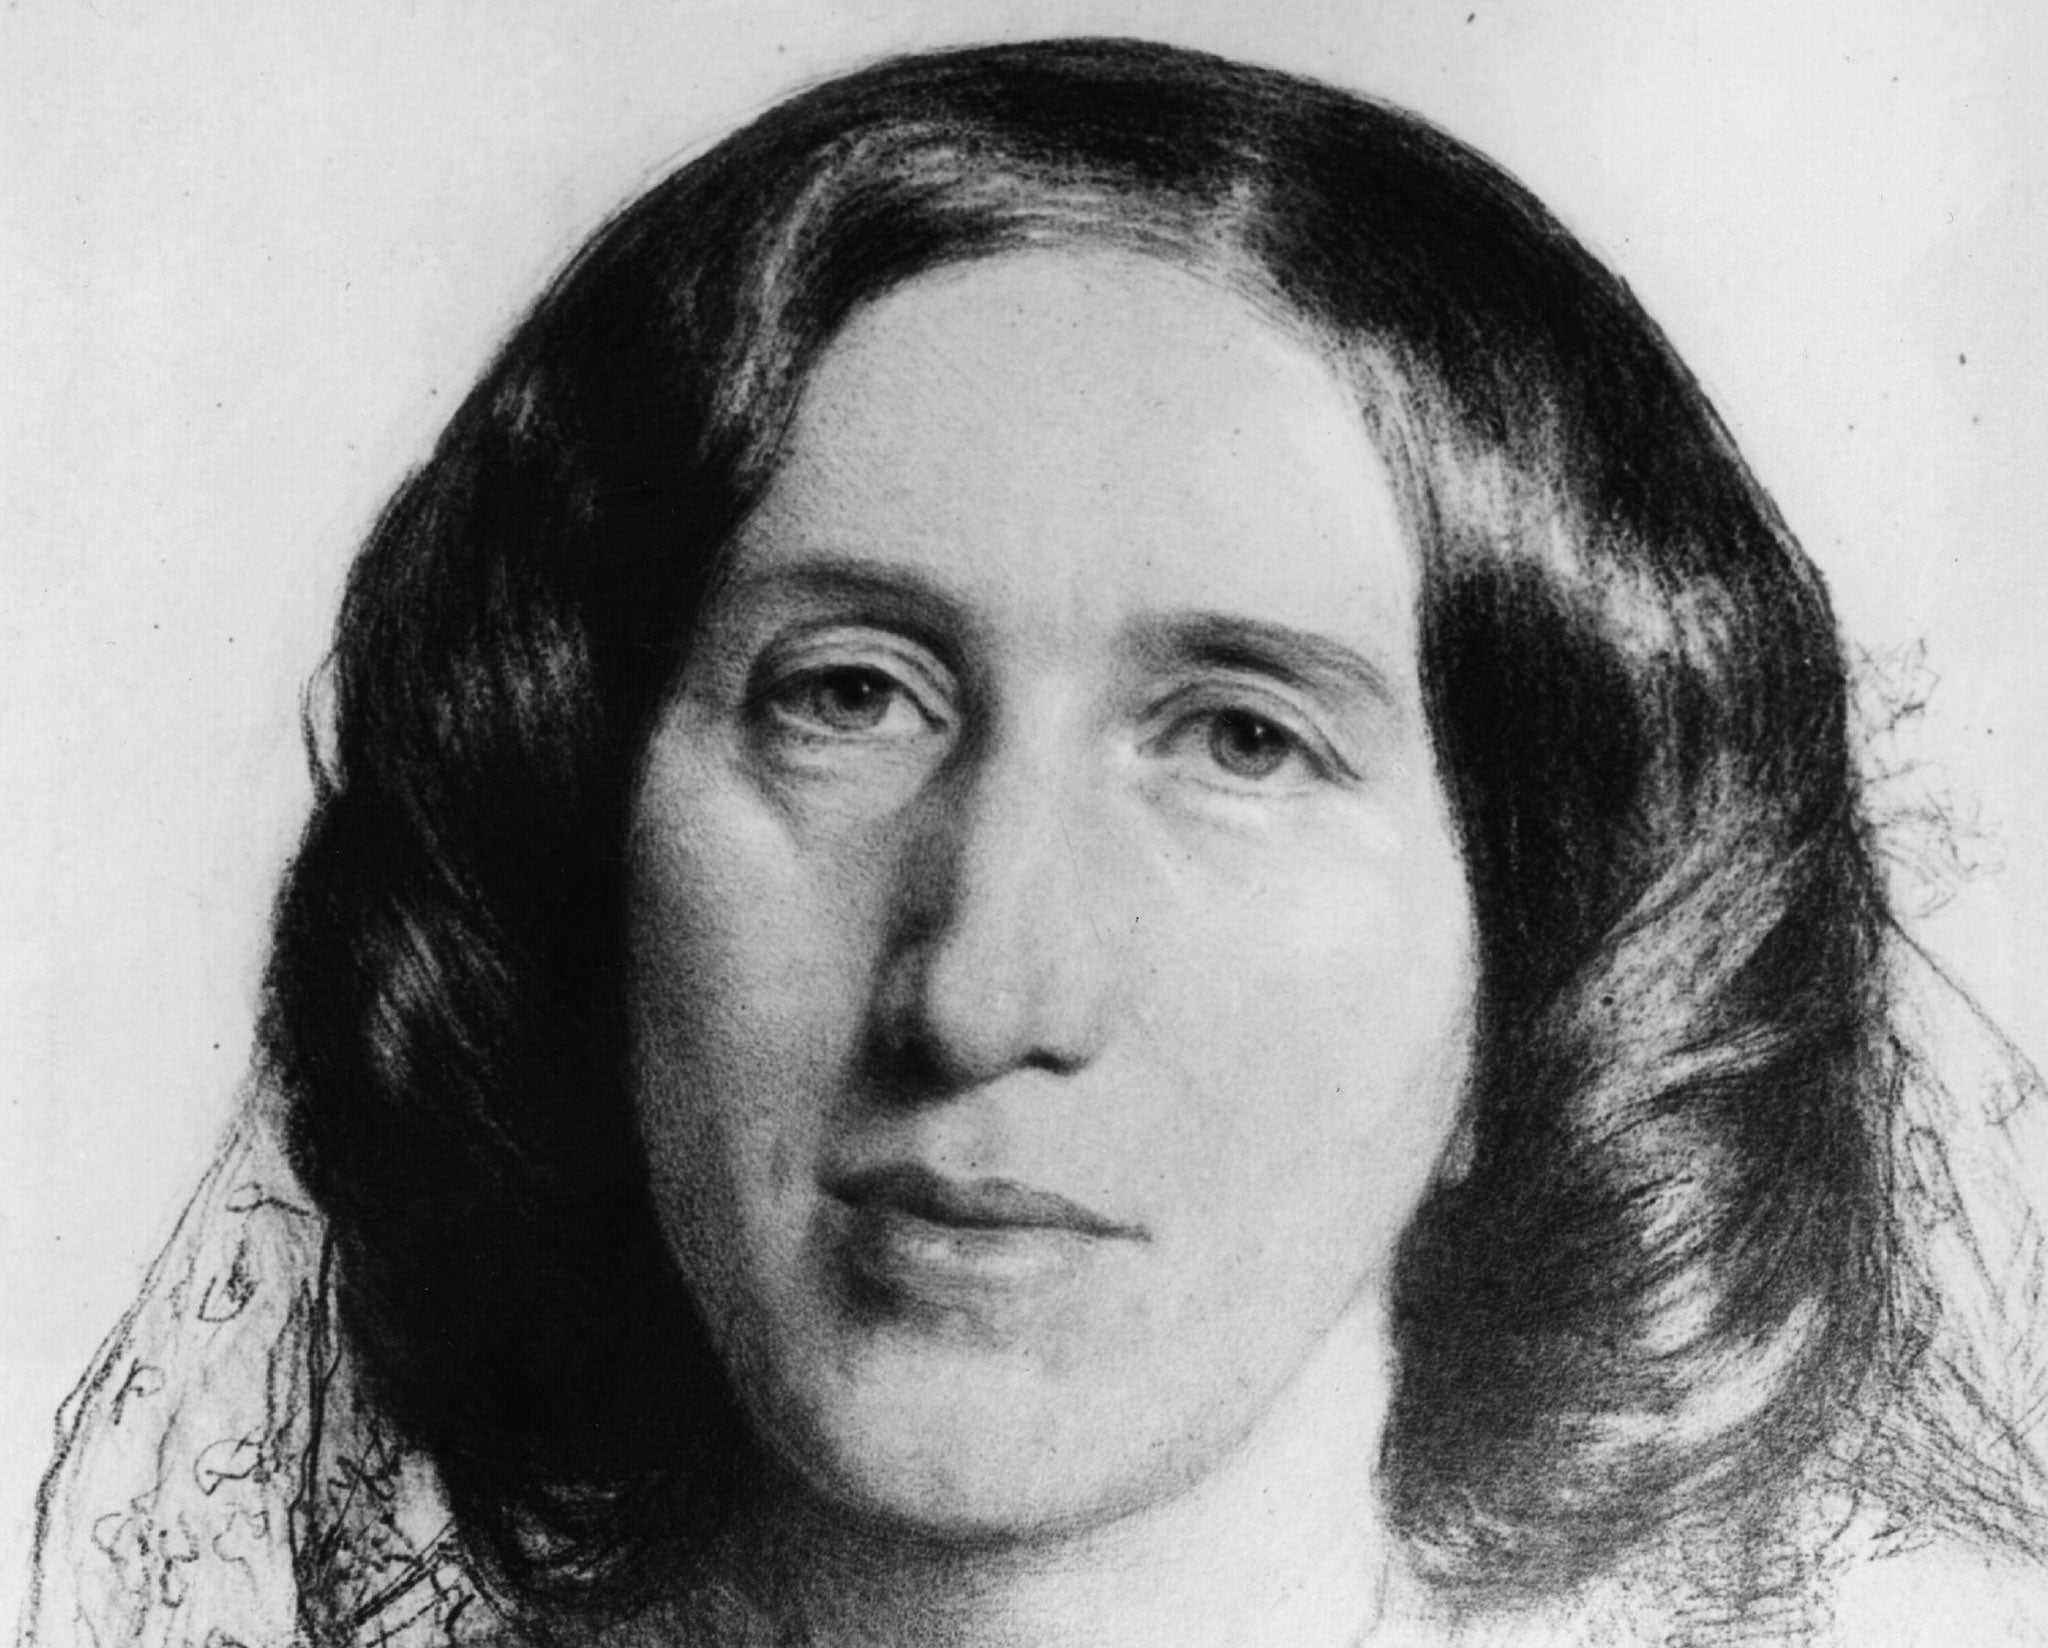 Middlemarch and Daniel Deronda by George Eliot, book of a